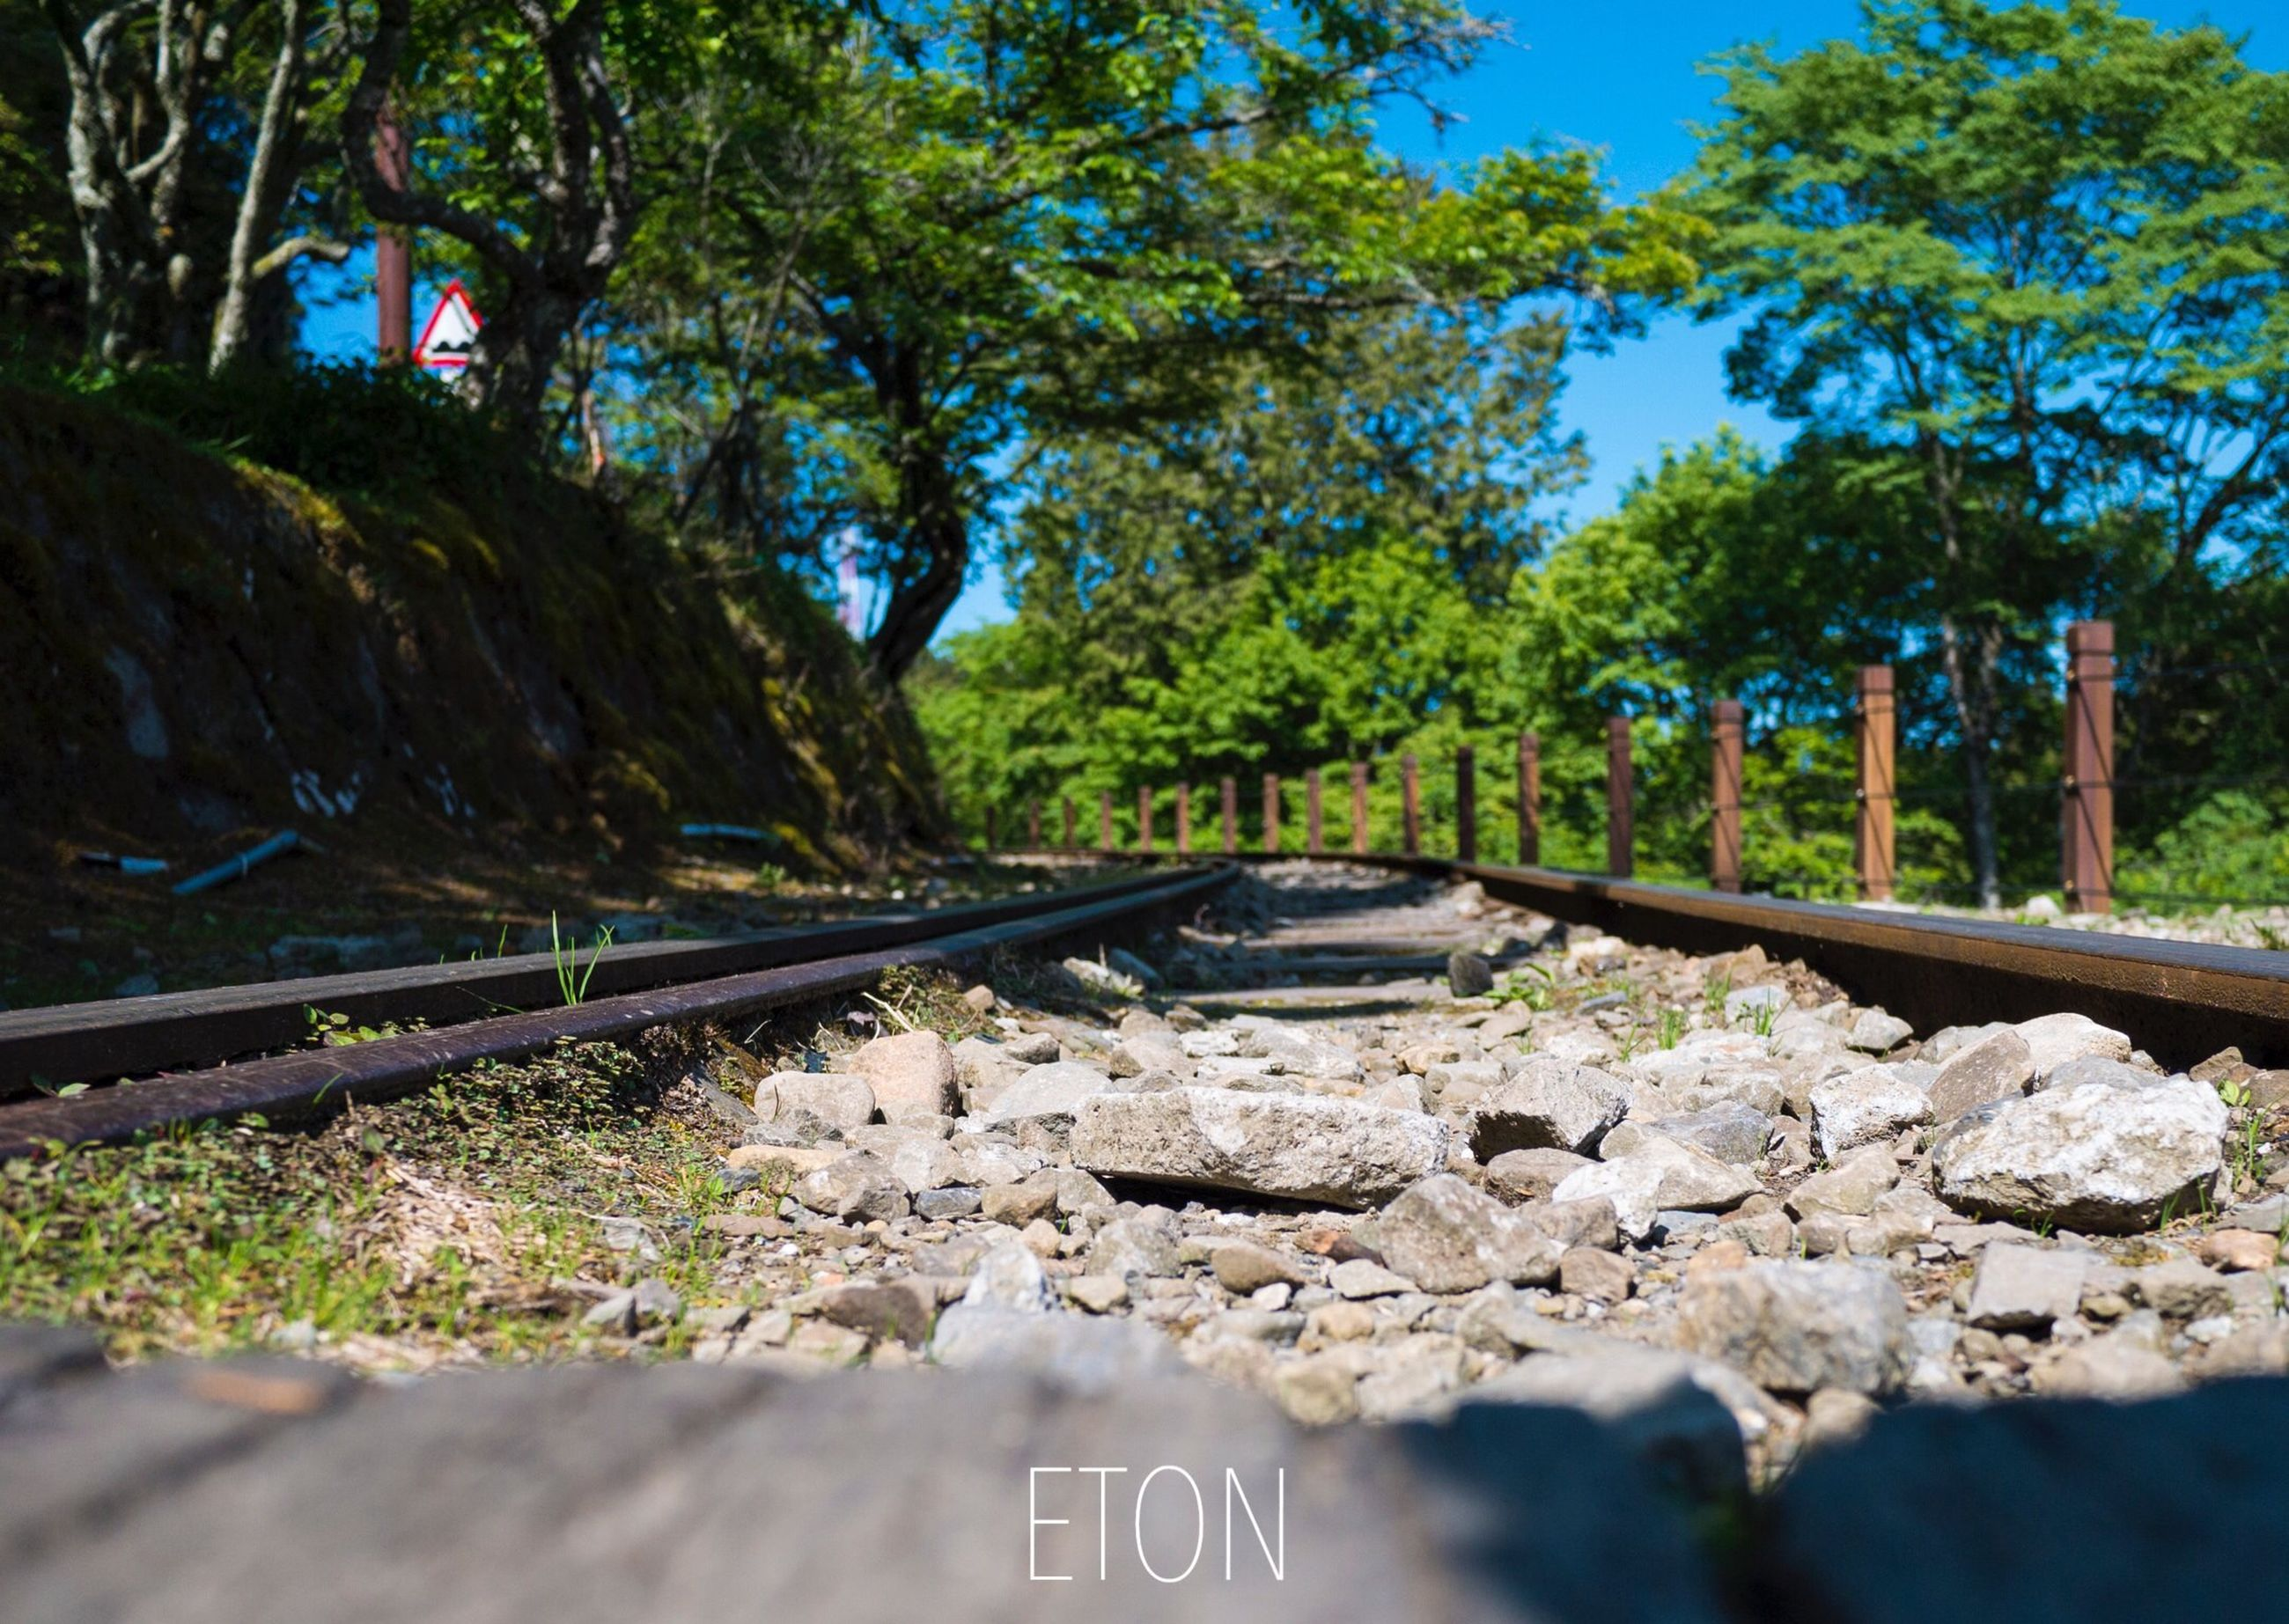 tree, transportation, railroad track, tranquility, bridge - man made structure, connection, nature, surface level, the way forward, diminishing perspective, forest, day, railing, metal, rail transportation, stone - object, no people, outdoors, tranquil scene, growth